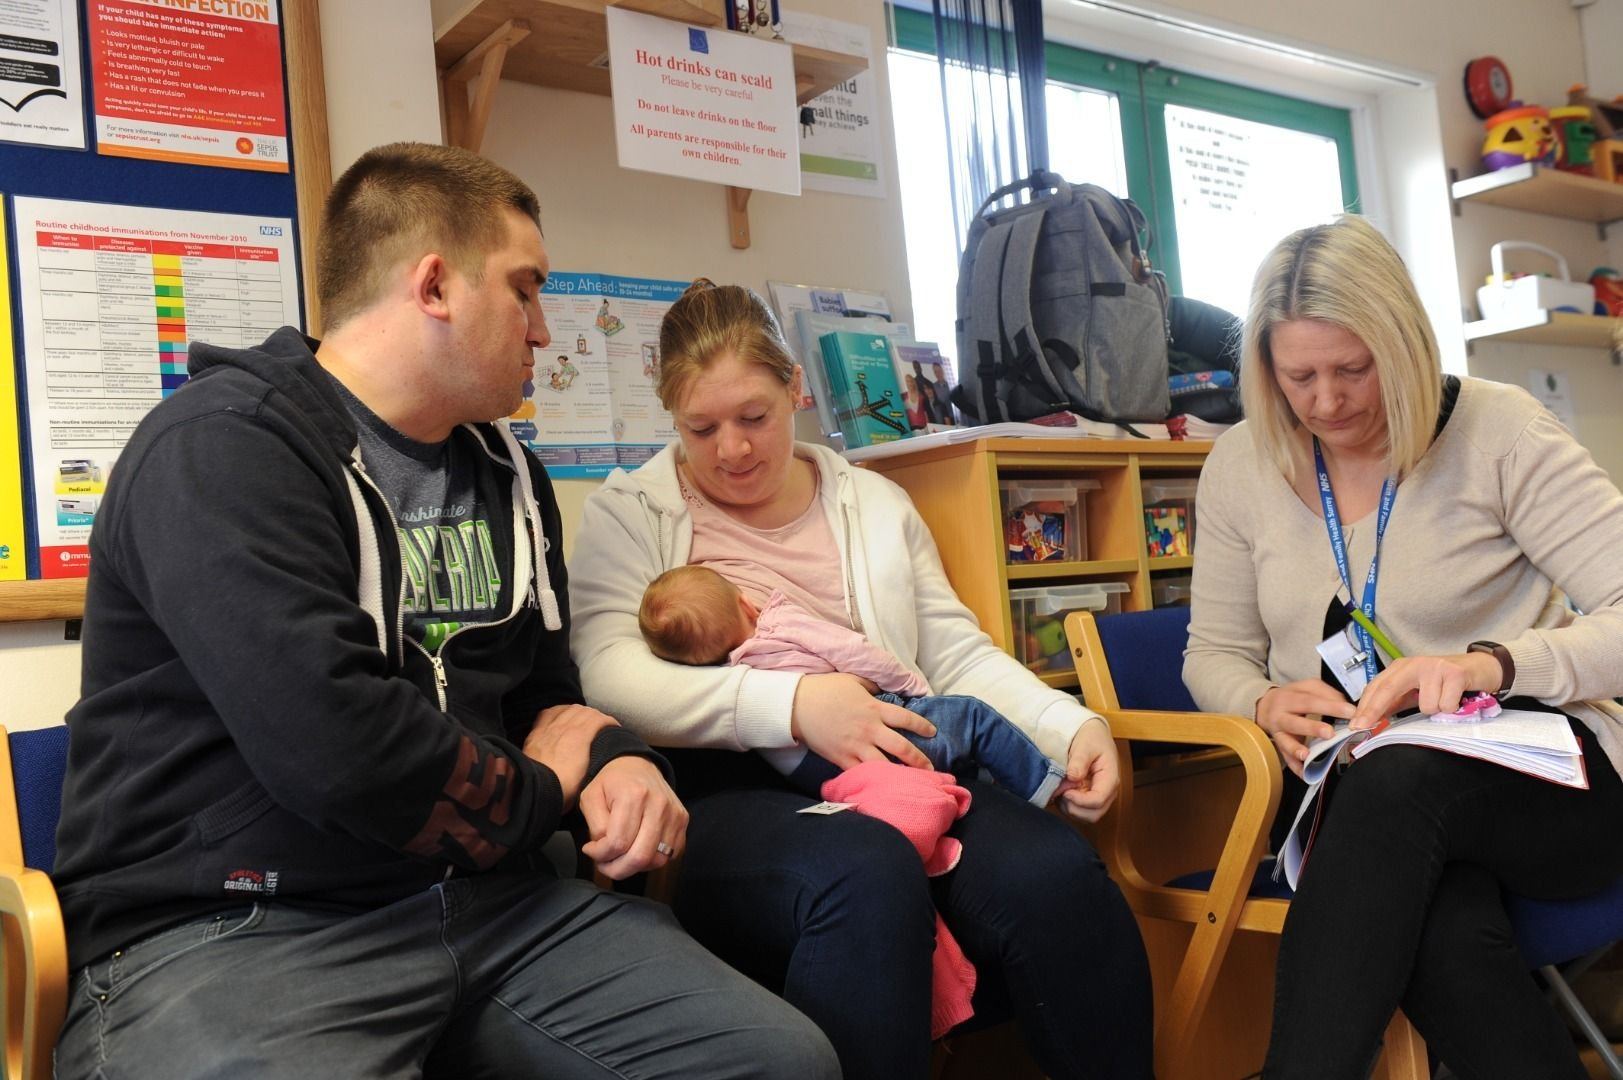 Family at a child health drop-in